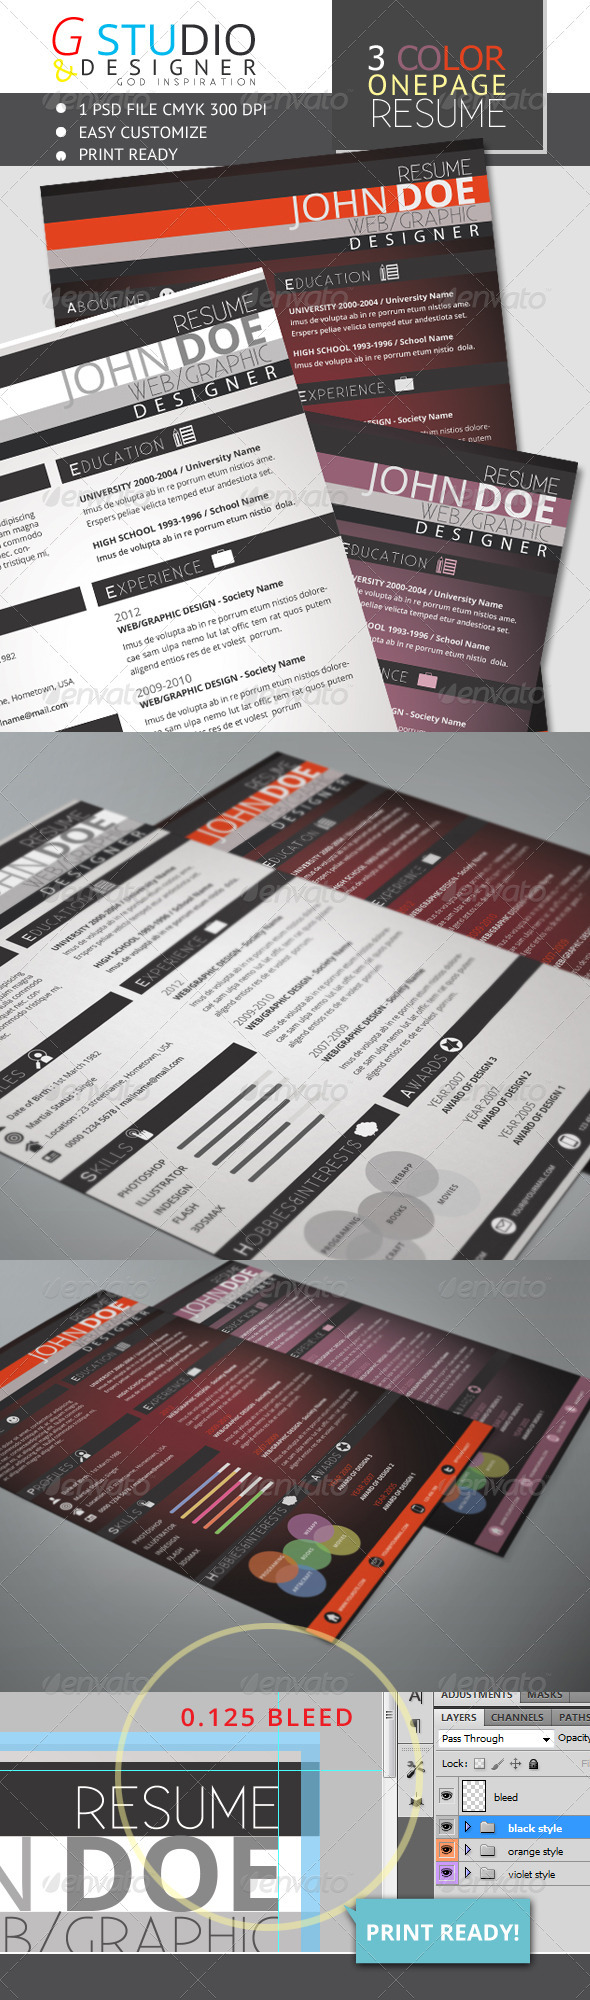 Gstudio 3 Color One Page Resume - Resumes Stationery